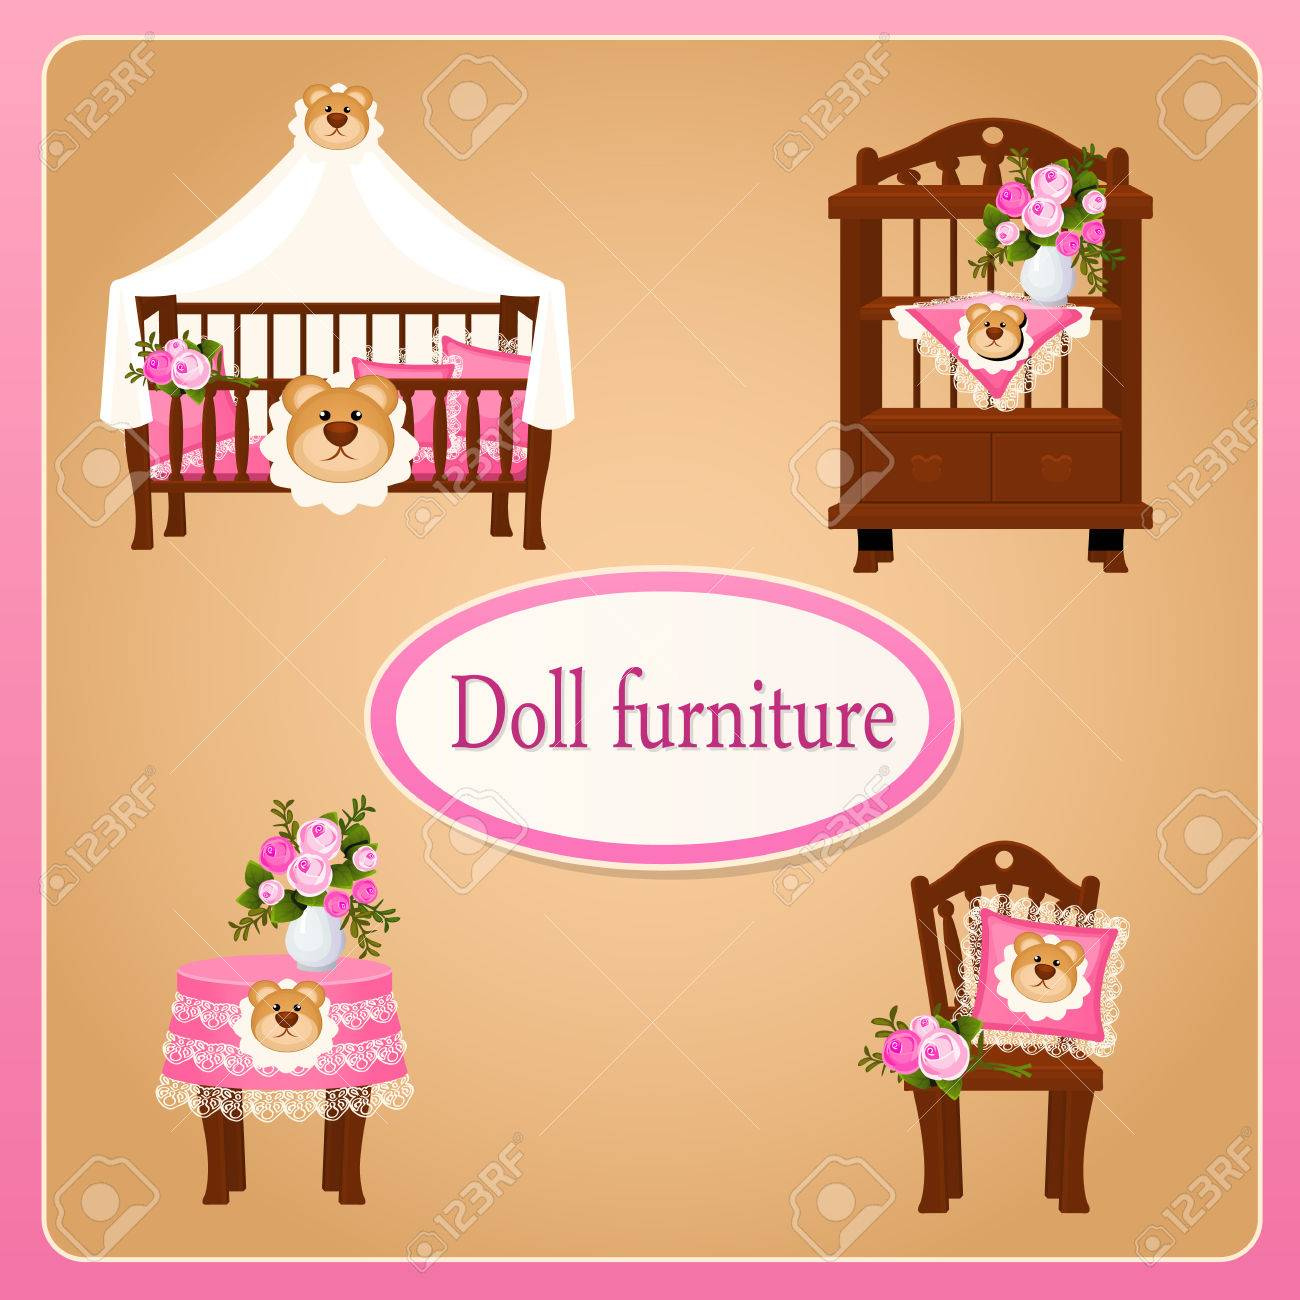 Dollhouse Furniture For Children S Room Royalty Free Cliparts